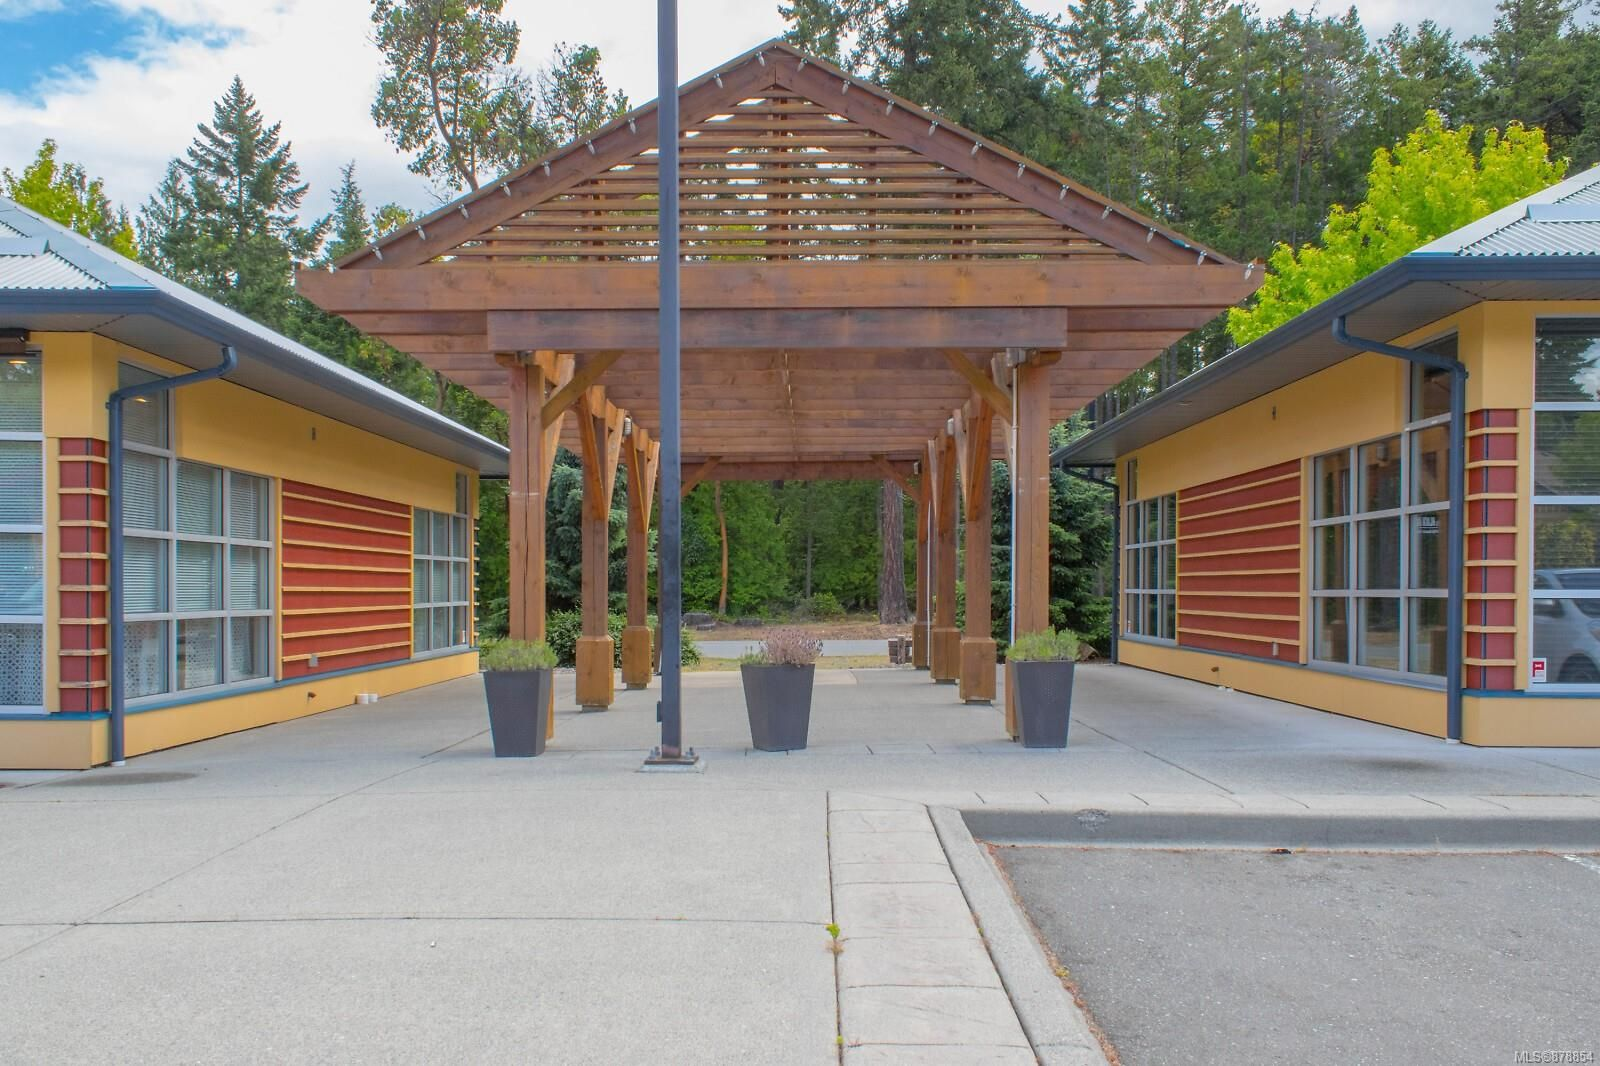 Photo 26: Photos: 223 1130 Resort Dr in : PQ Parksville Row/Townhouse for sale (Parksville/Qualicum)  : MLS®# 878854